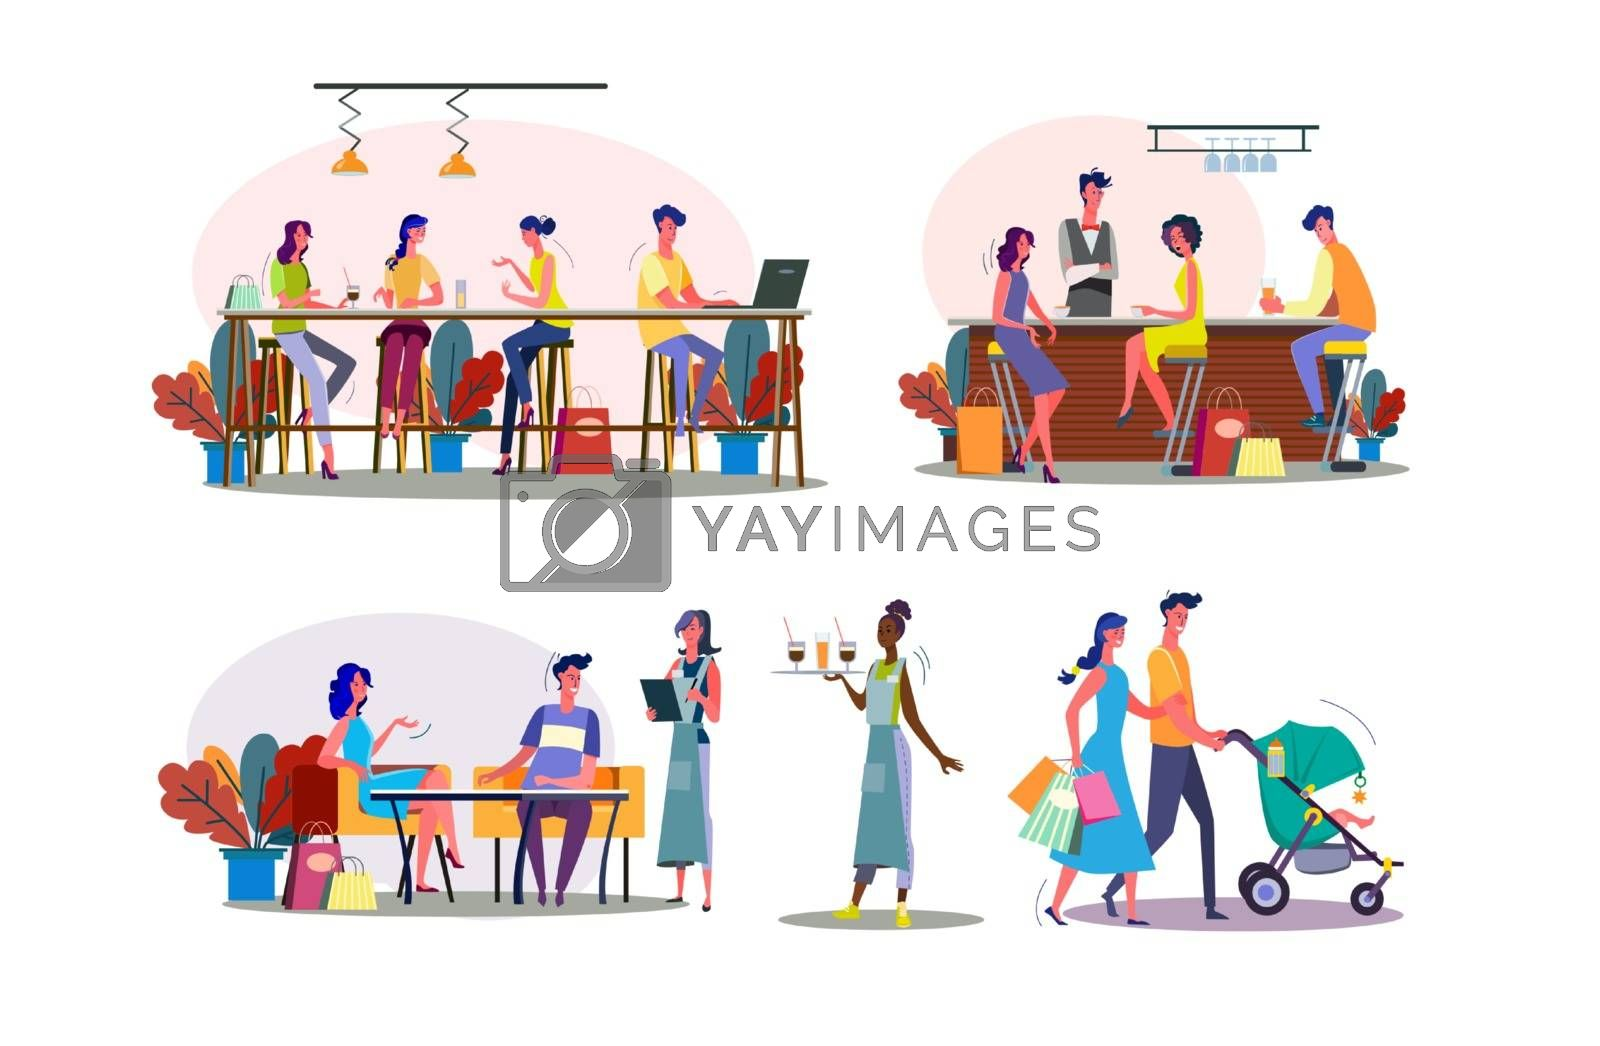 Leisure time together illustration set. Family couple walking with child, friends meeting in bar or cafe. Communication concept. Vector illustration for banners, posters, website design